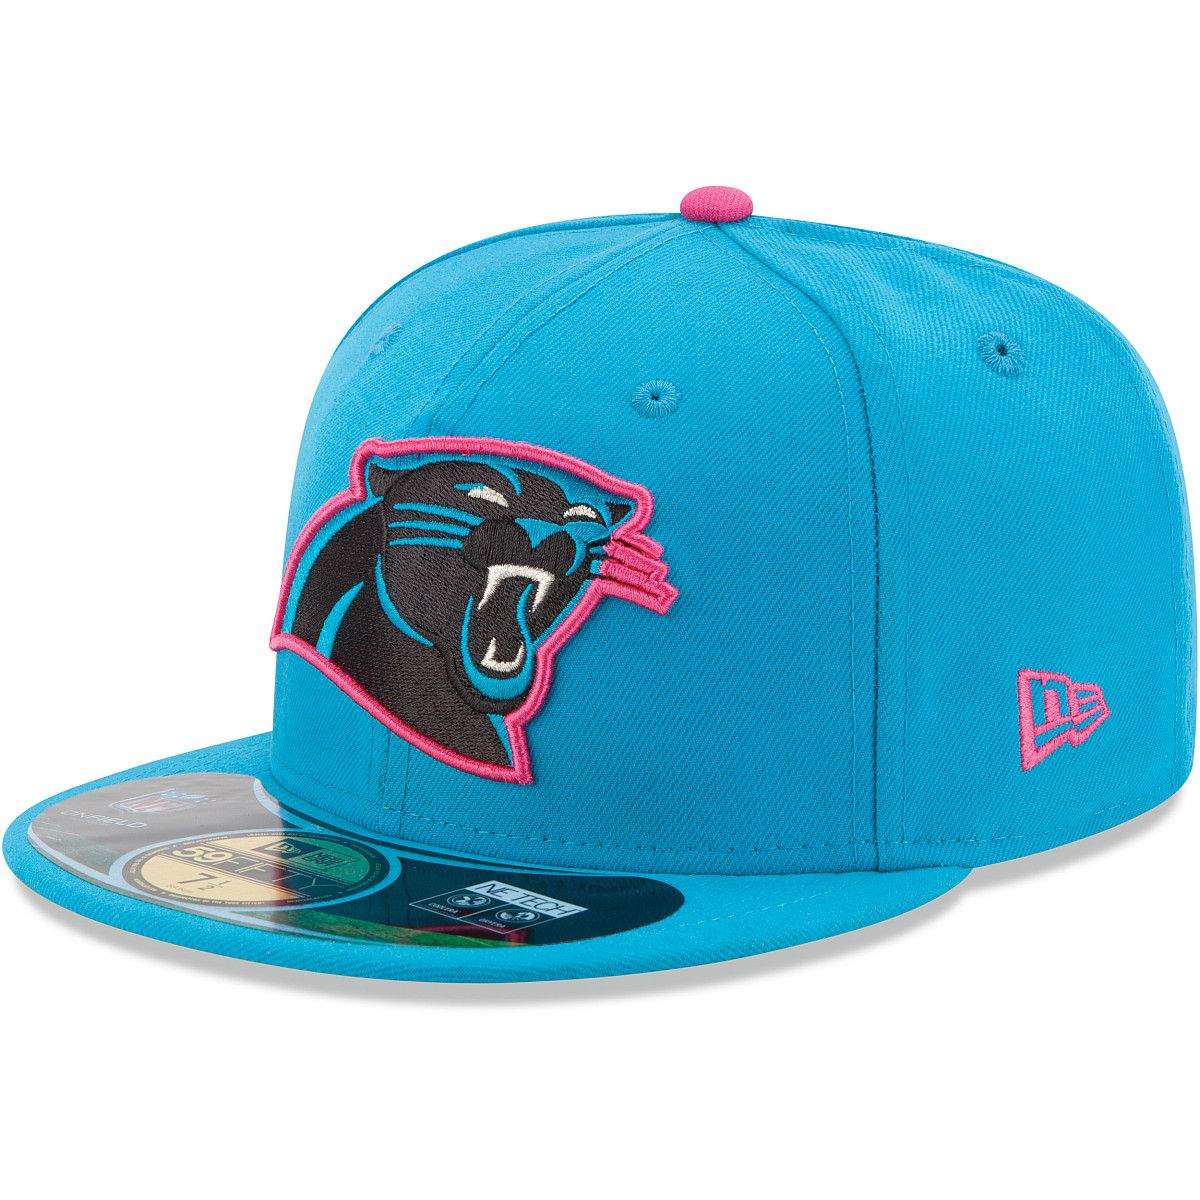 4570e917b New Era Men s Carolina Panthers Breast Cancer Awareness Official On Field  59FIFTY Fitted Cap - SportsAuthority.com